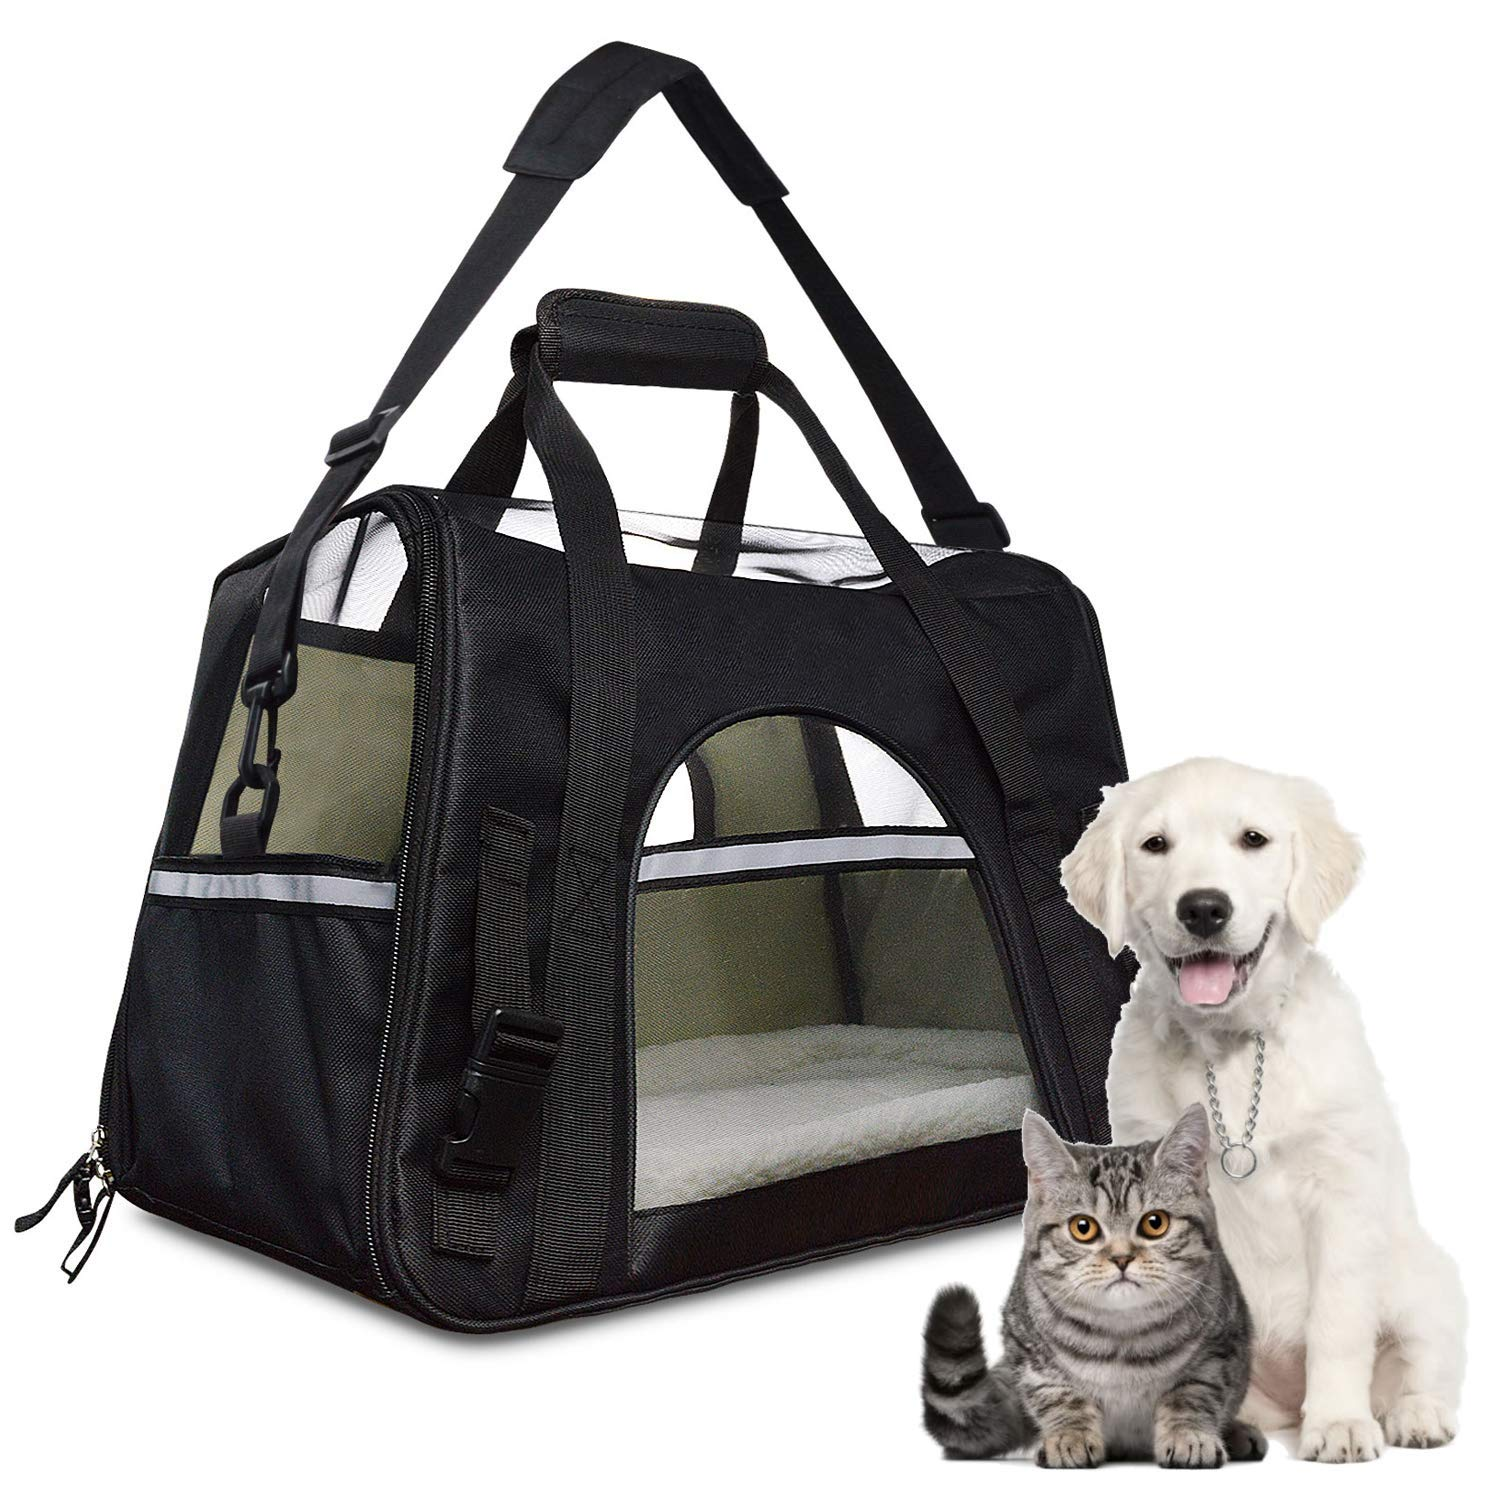 Airline Approved Pet Carrier,Waterproof Pet Travel Carrier With Fleece Bedding Soft Sided Portable Tote For Cats And Small Dog